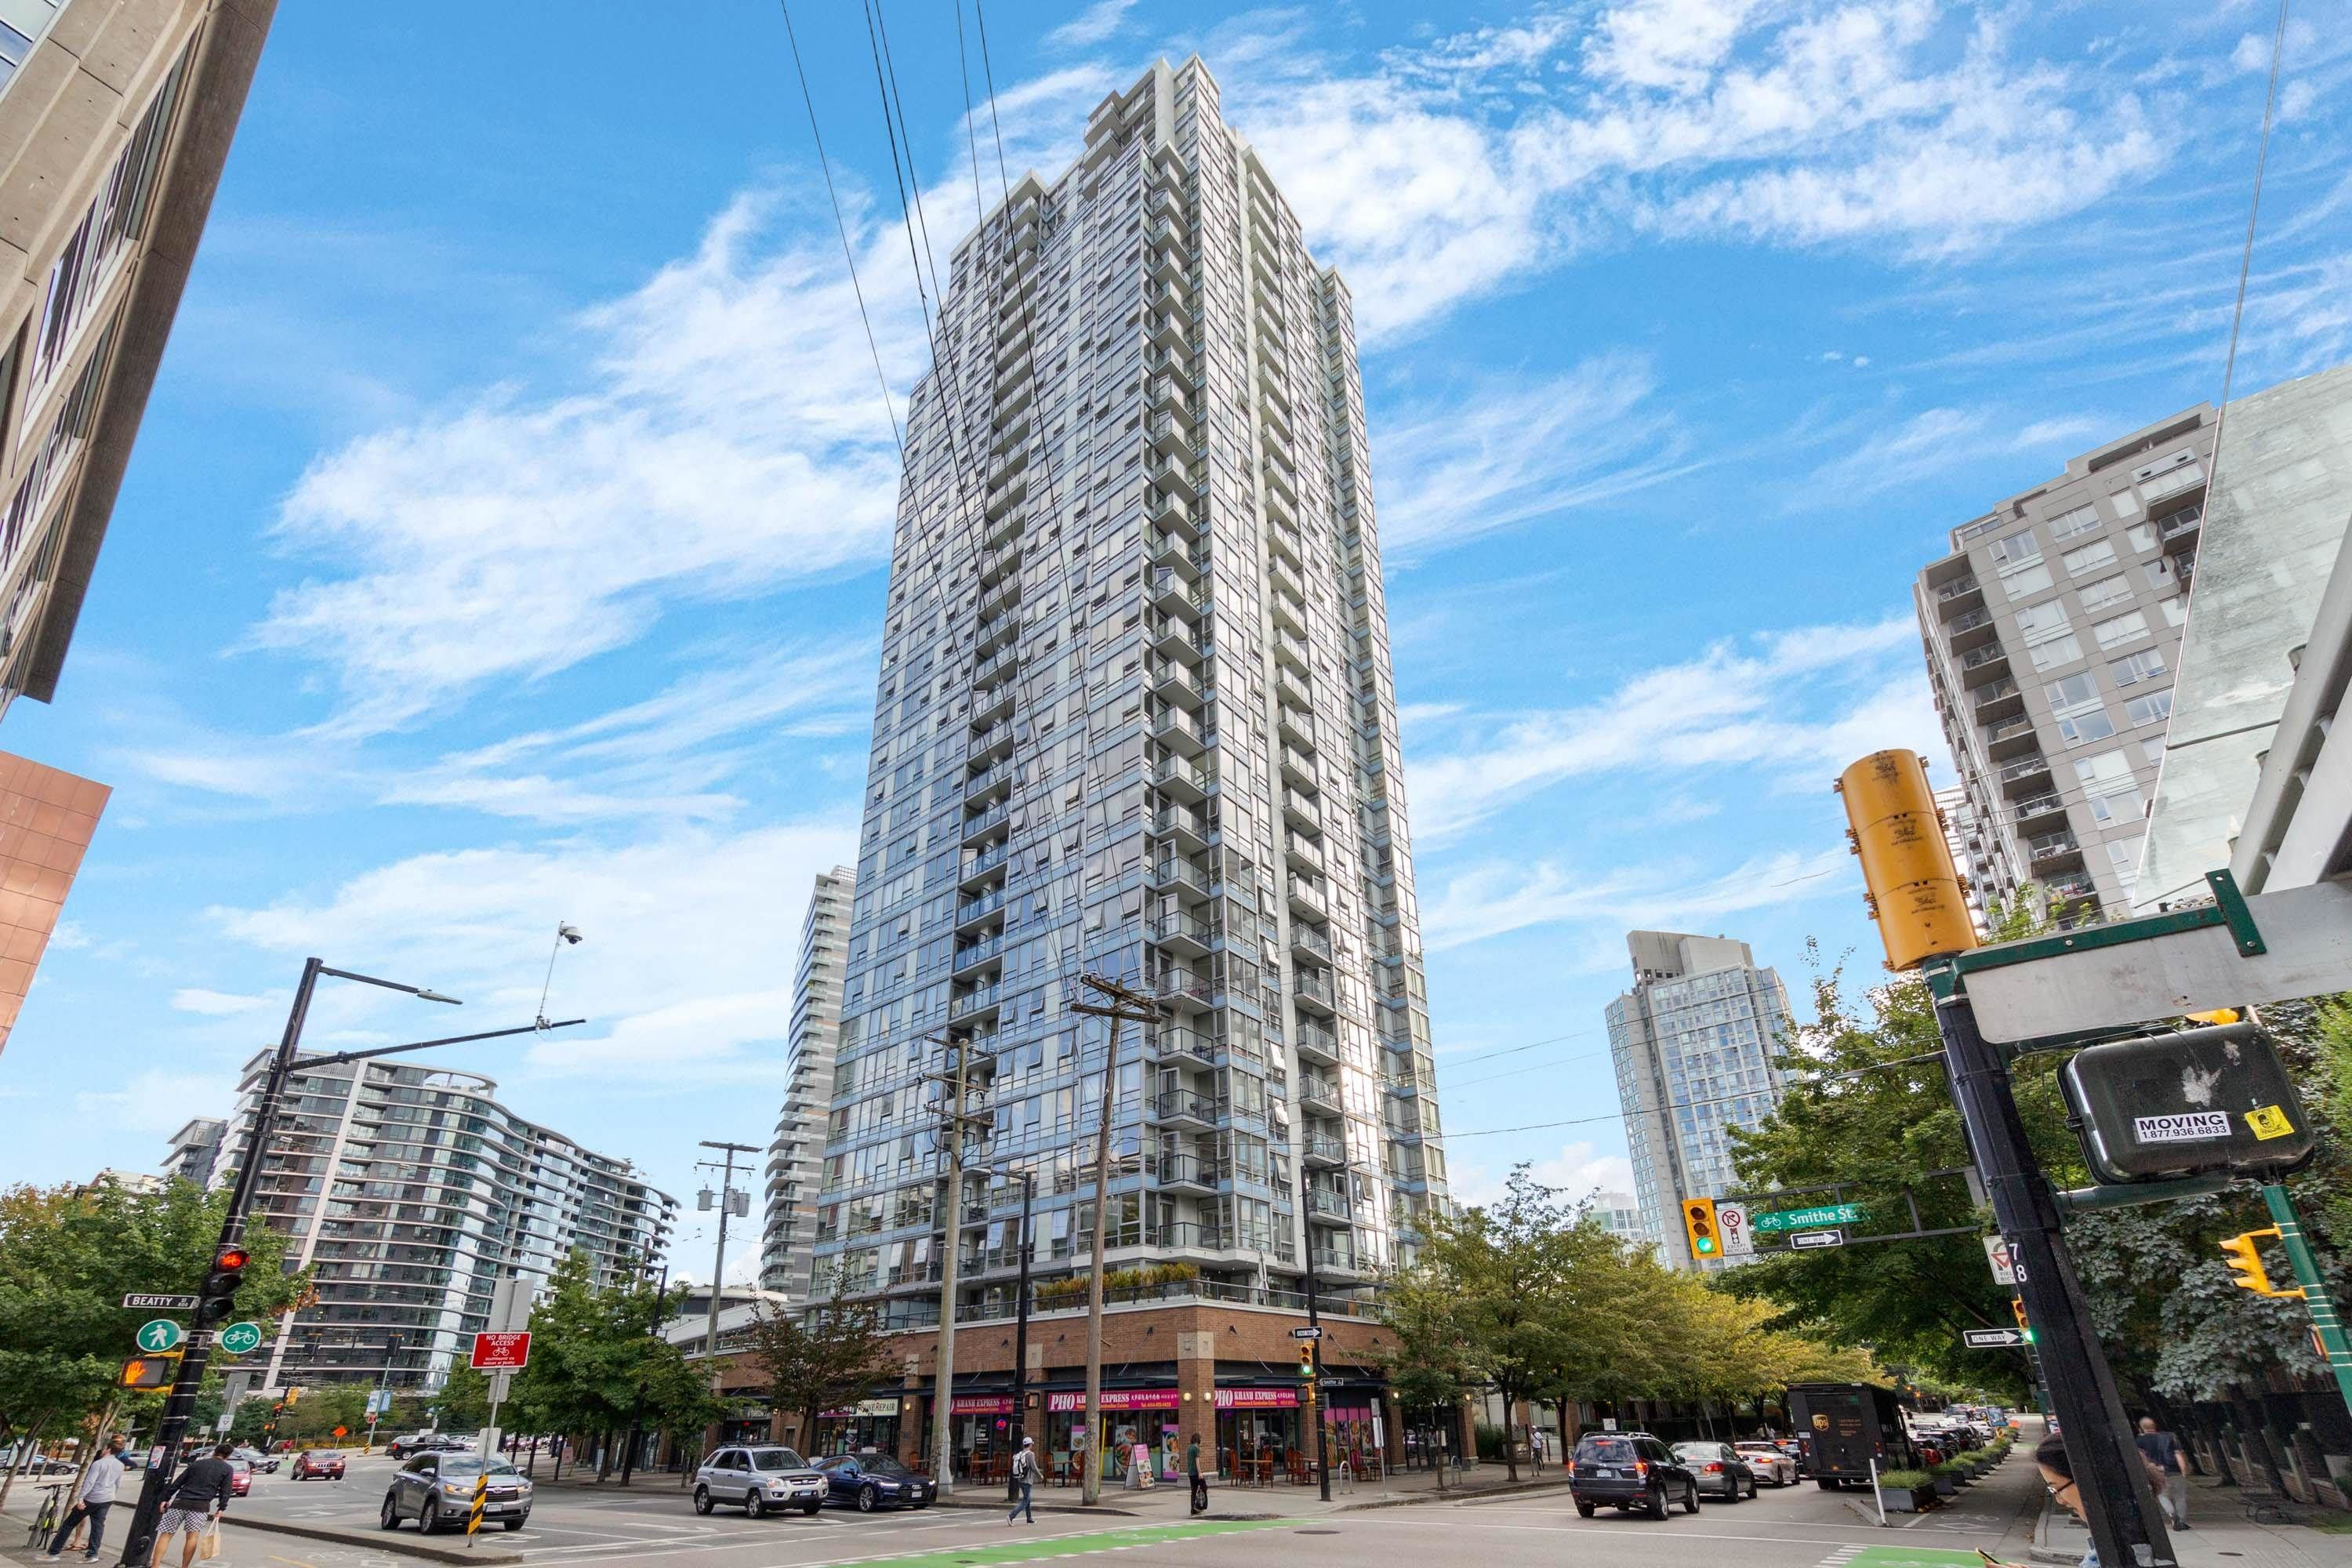 Main Photo: 1709 928 BEATTY Street in Vancouver: Yaletown Condo for sale (Vancouver West)  : MLS®# R2615839